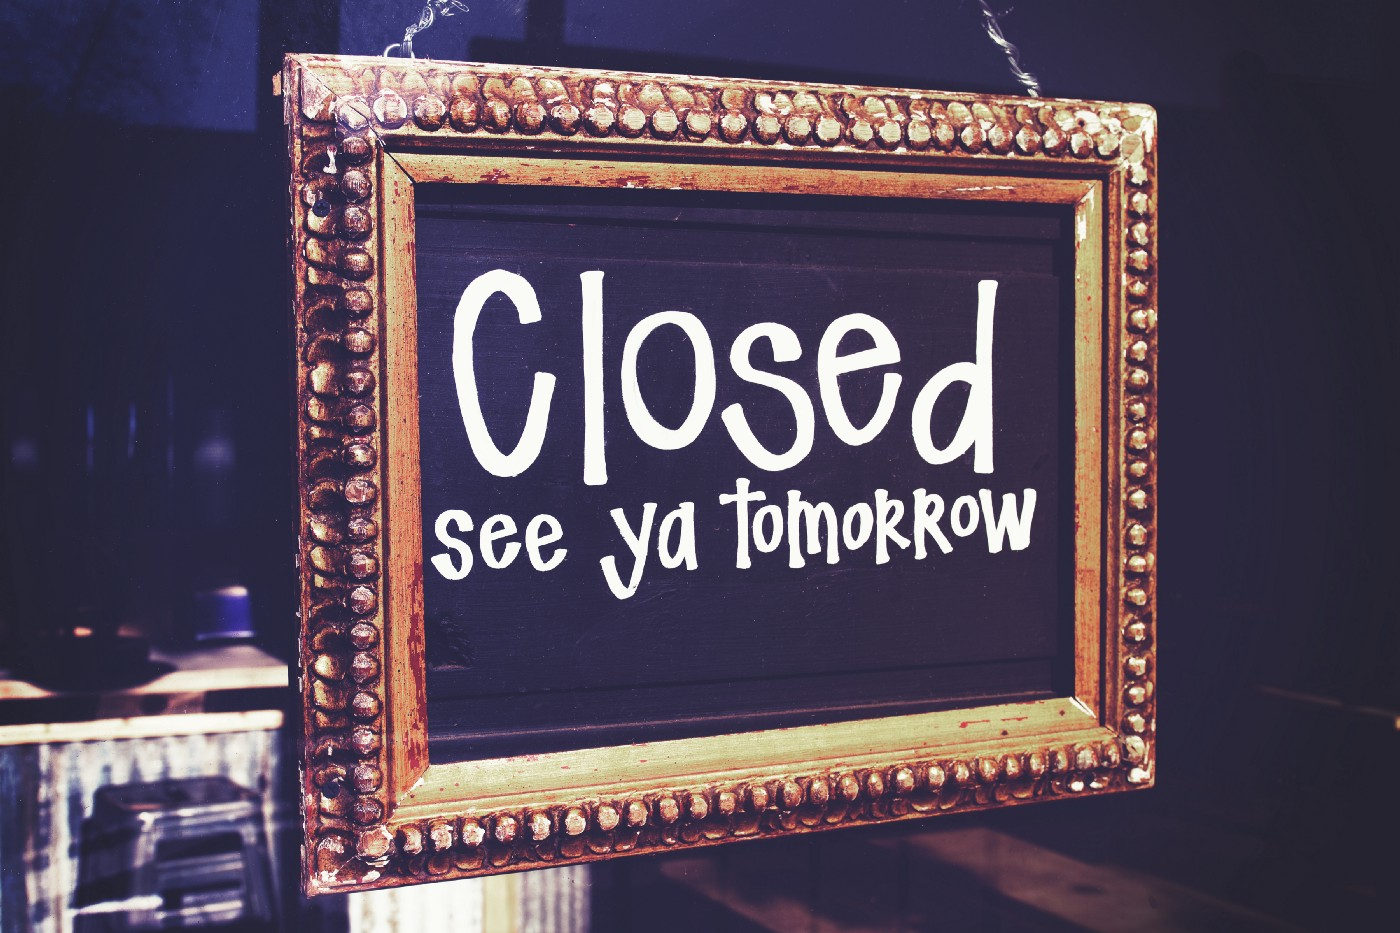 A sign that says closed see ya tomorrow, likely because of procrastination.